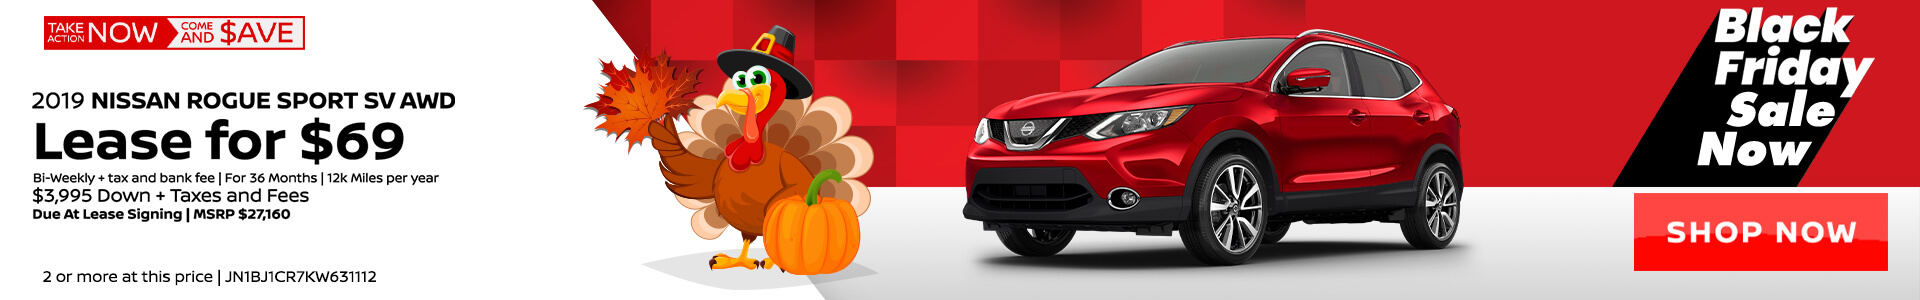 Nissan Rogue Sport $69 Lease